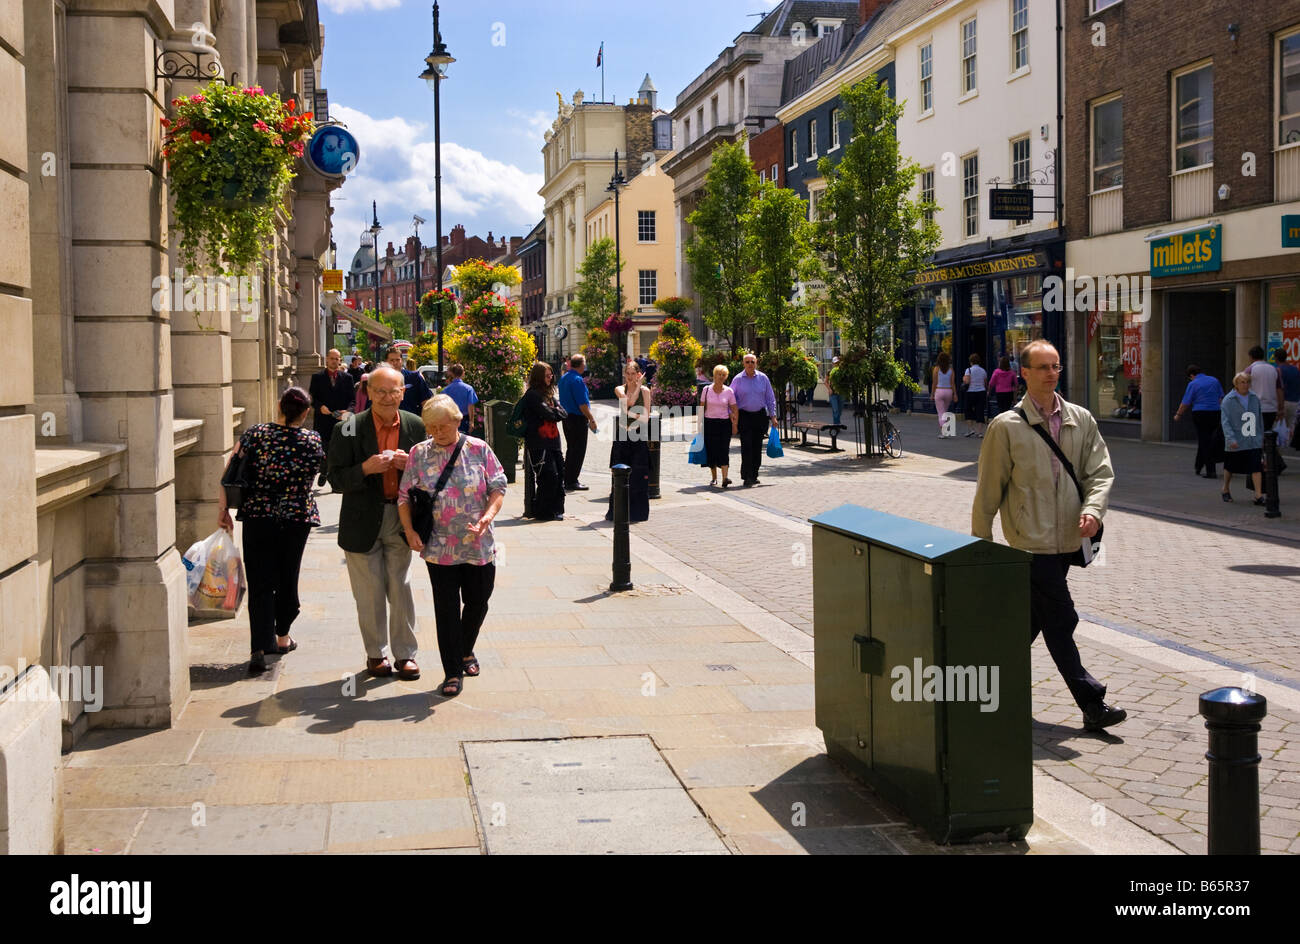 Doncaster town centre High Street, South Yorkshire, England, UK - Stock Image